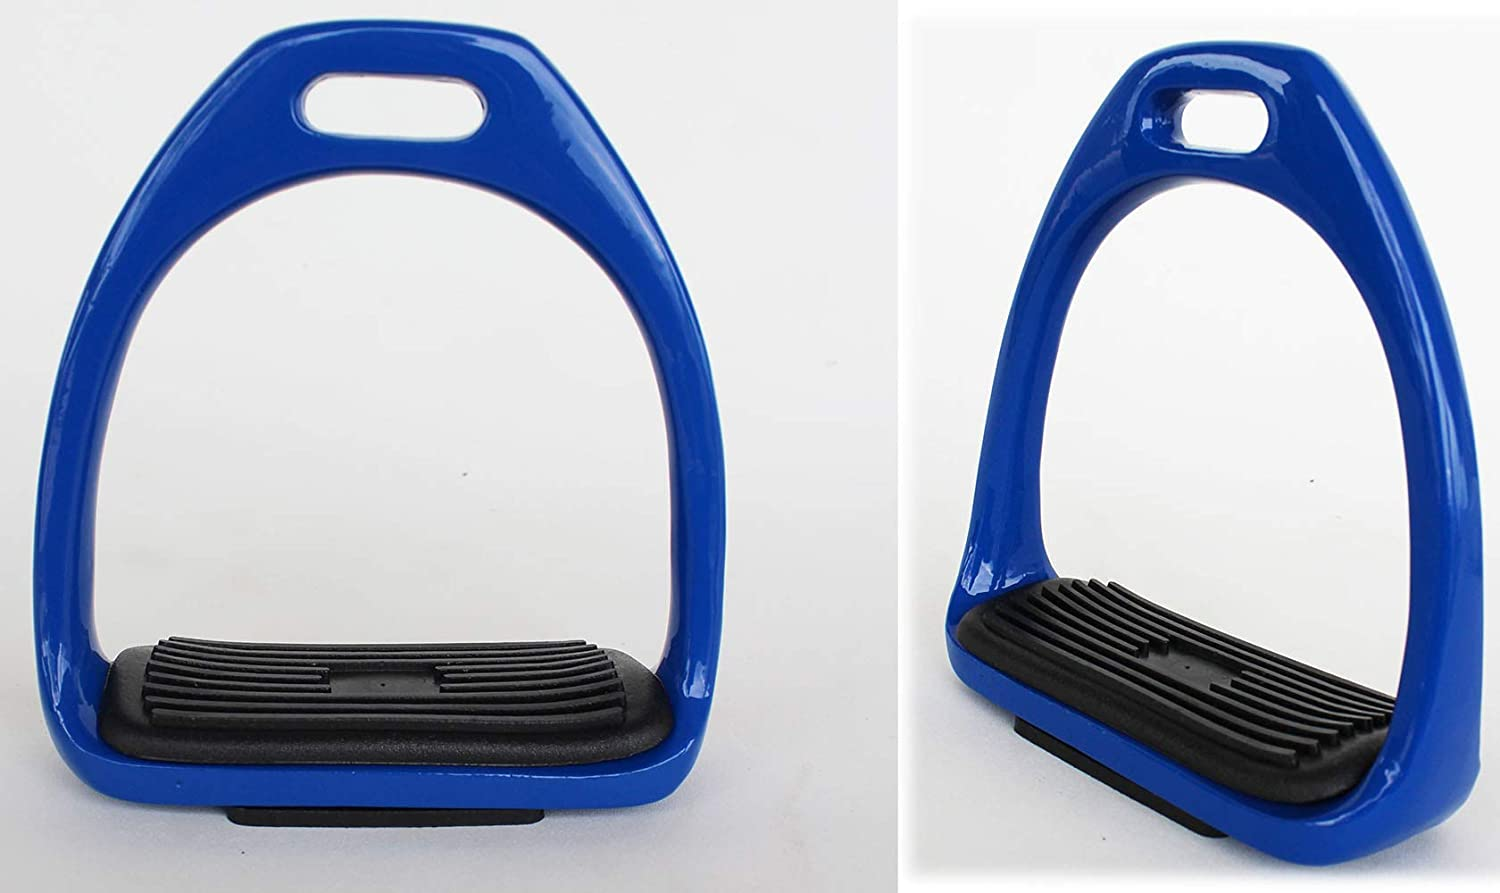 CHALLENGER Horse Saddle English 4-1//2 Wide Lightweight Stainless Steel Fillis Irons Royal Blue Stirrups 51117RB Challenger Horsewear